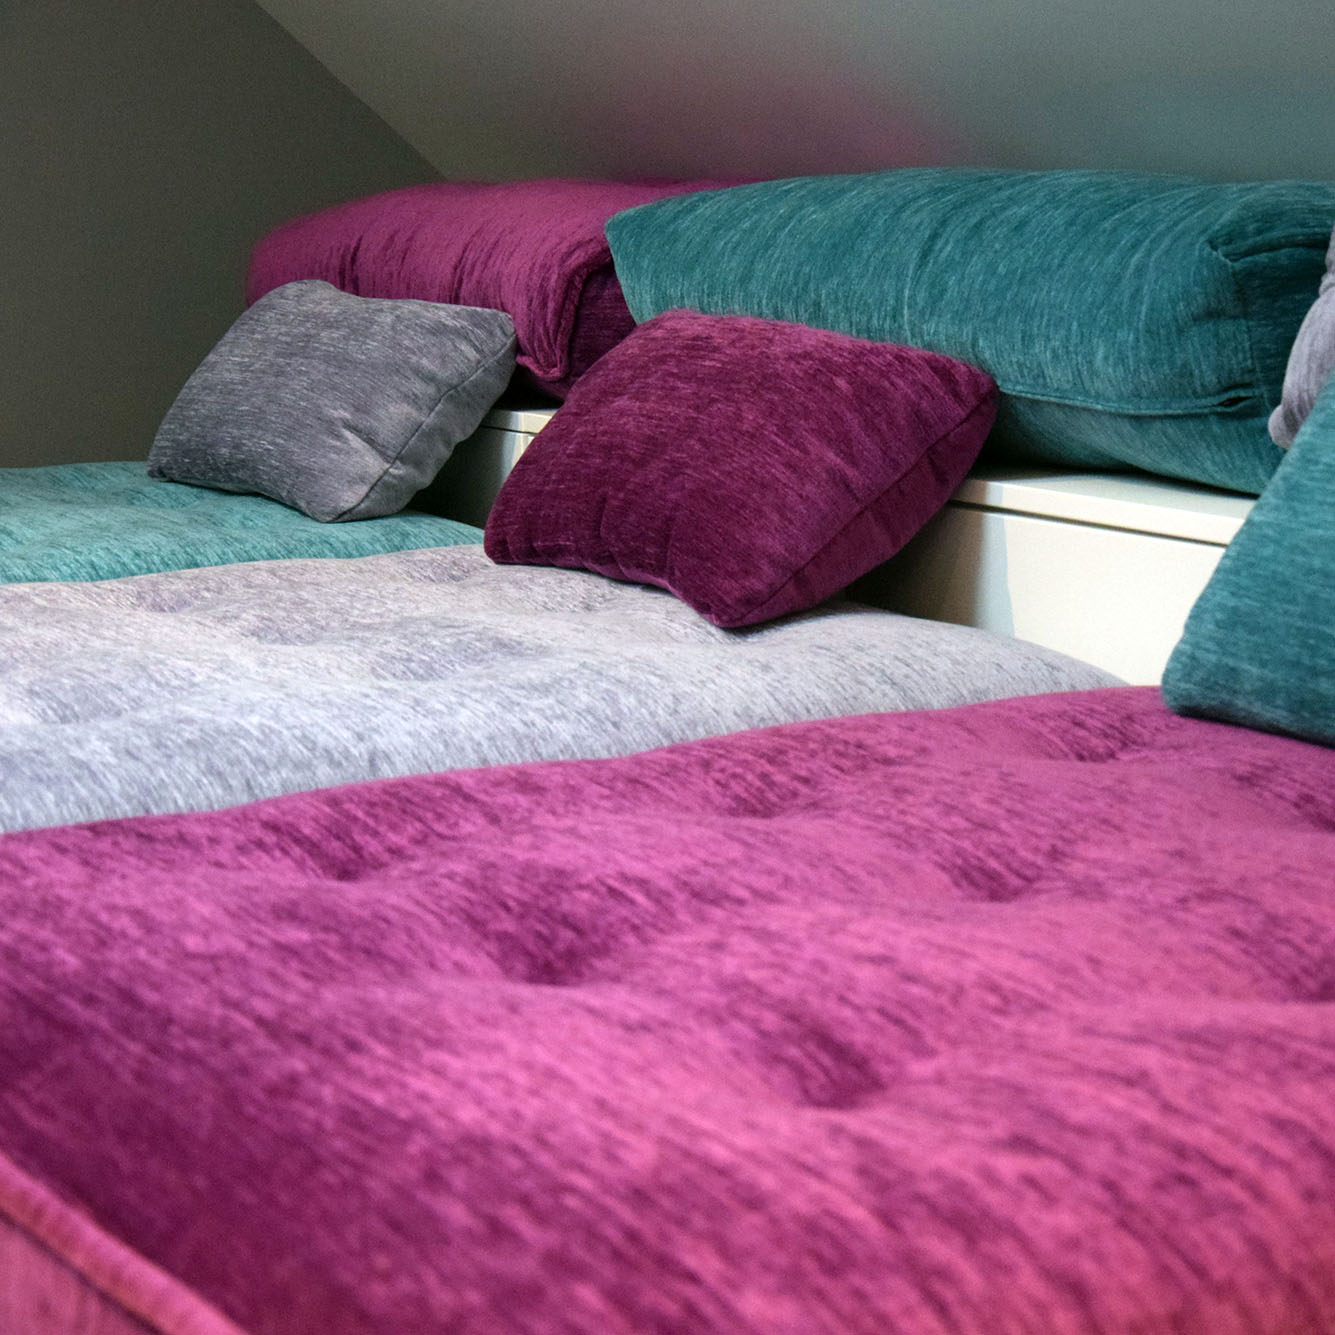 montreuil-appart-holiday-coussins.jpg